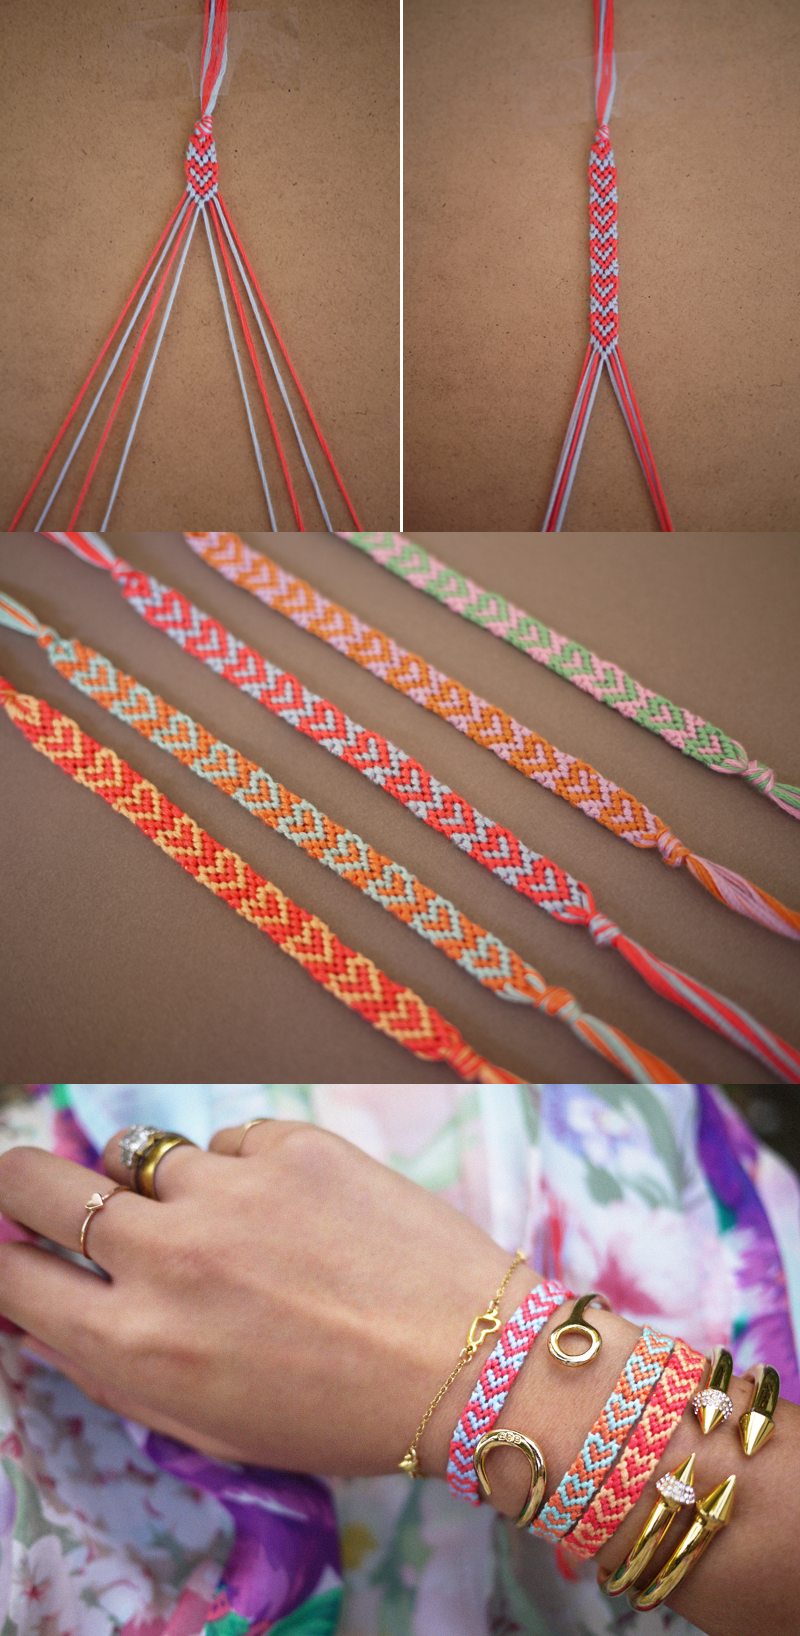 DIY Heart Friendship Bracelet Tutorial• already made one! It's so cute and so easy!